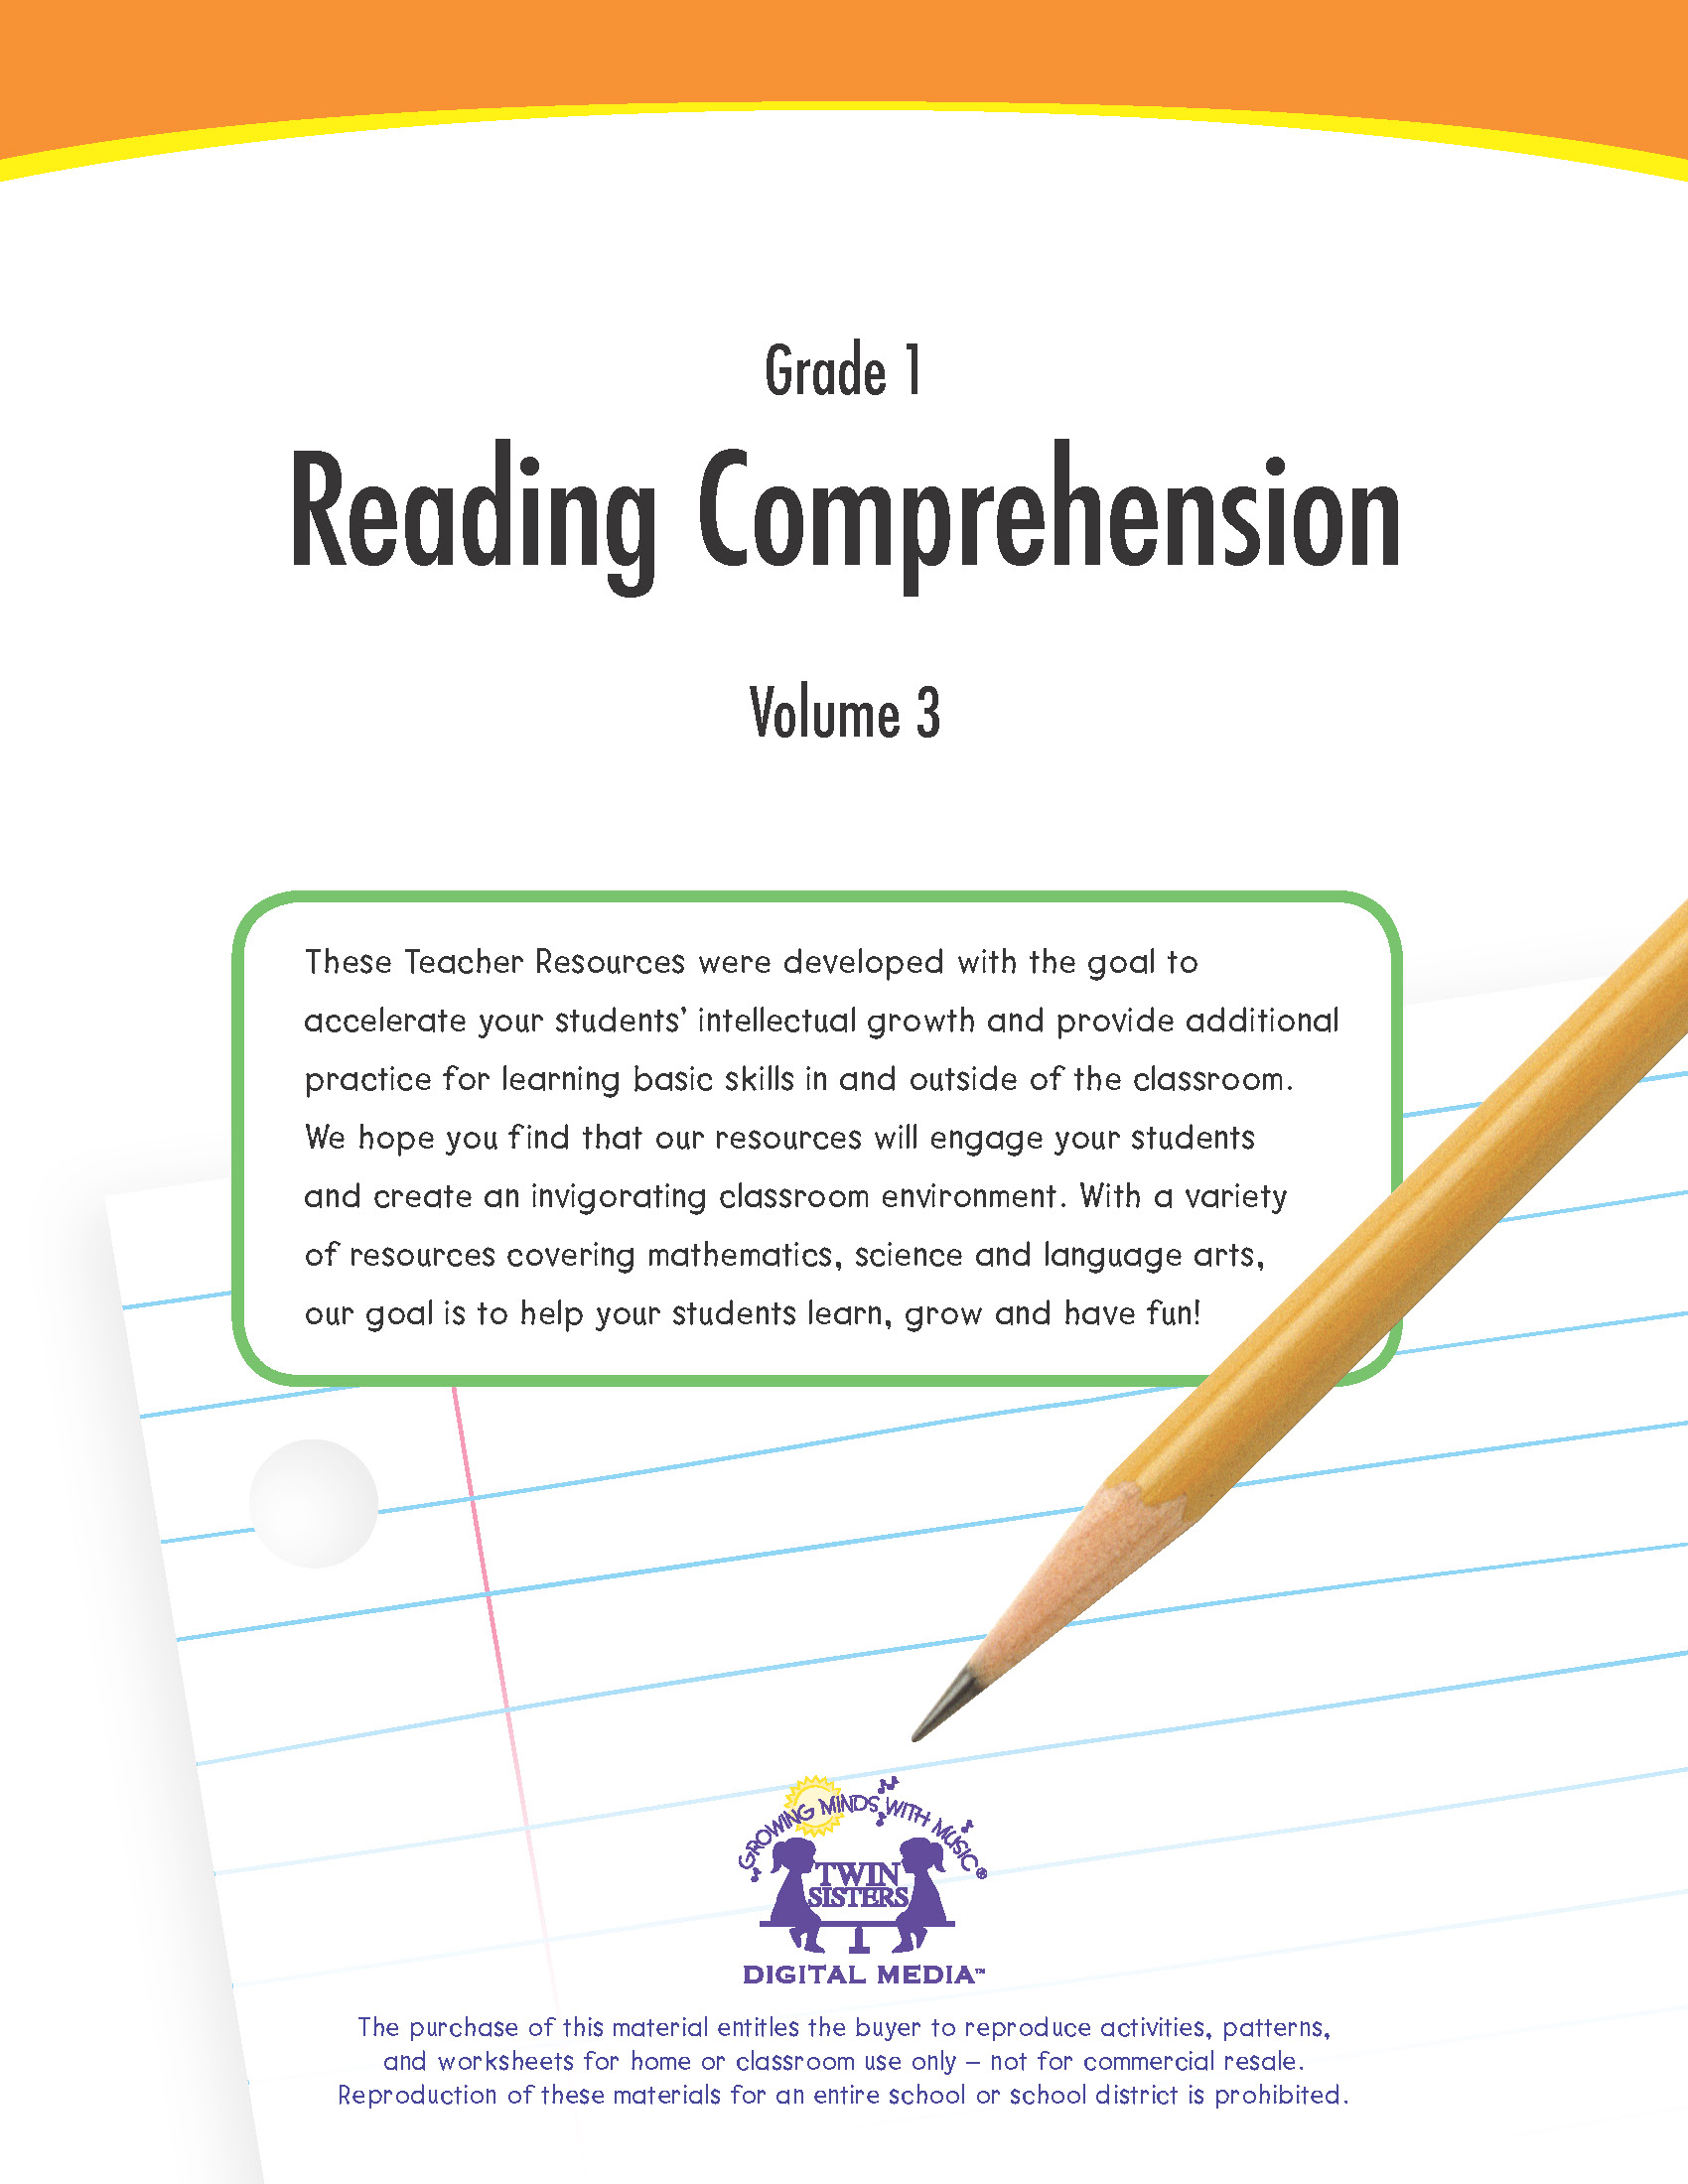 Grade 1 Reading Comprehension Volume 3